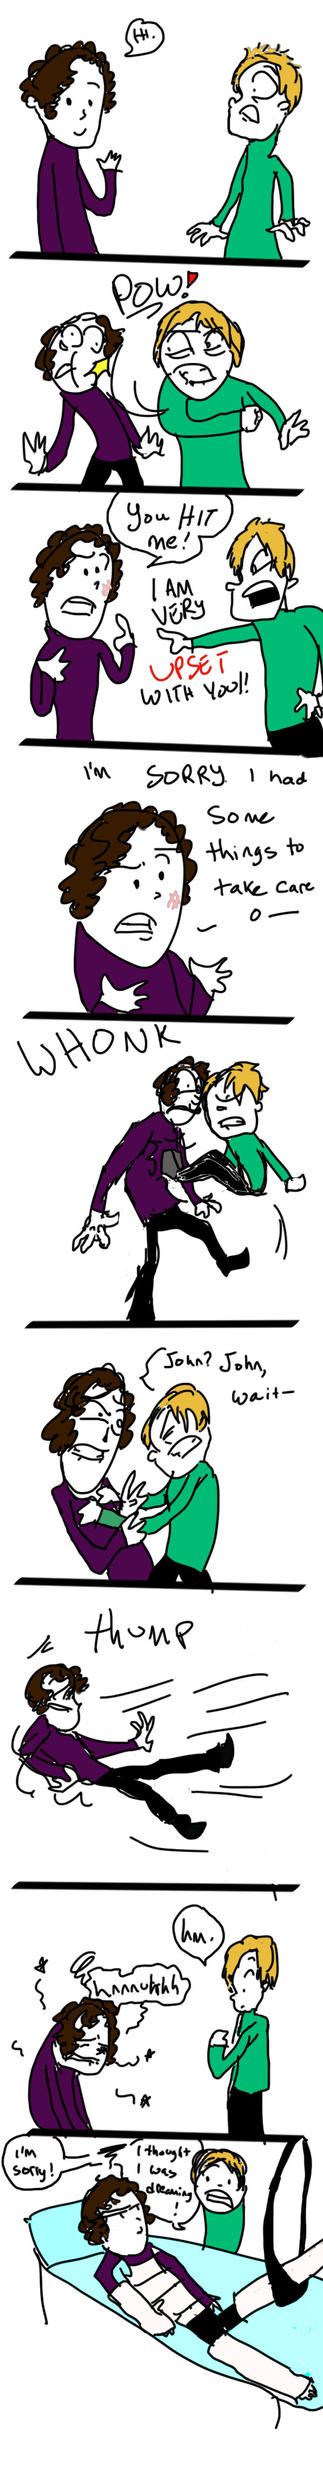 Sherlock - Excuse me while I punch you by accidentprone392